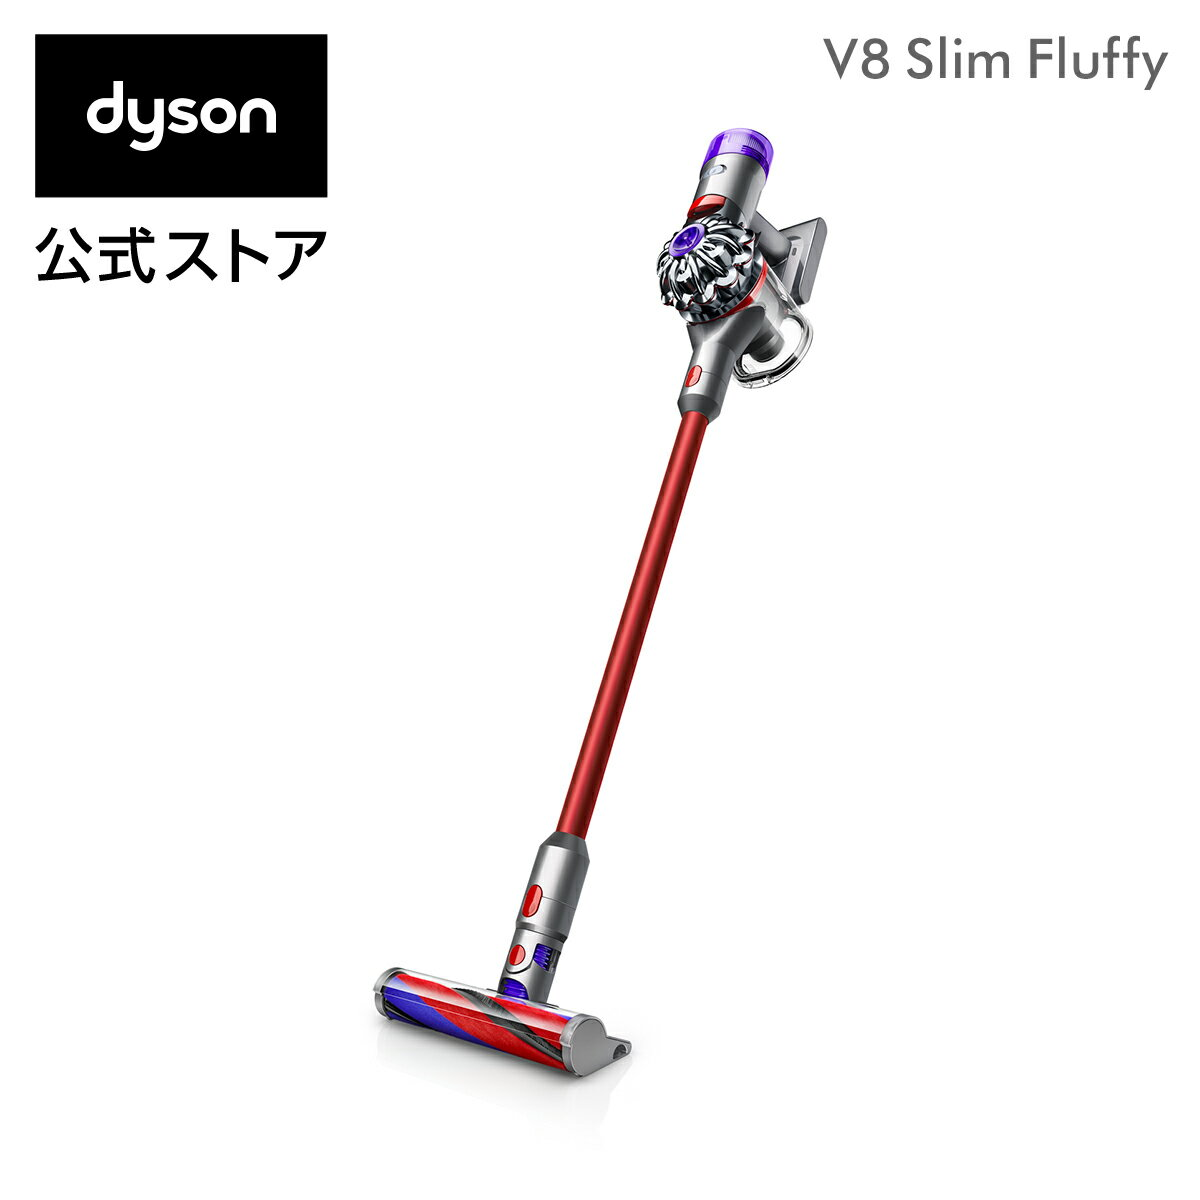 Dyson(ダイソン)『V8 Slim Fluffy(SV10K SLM)』